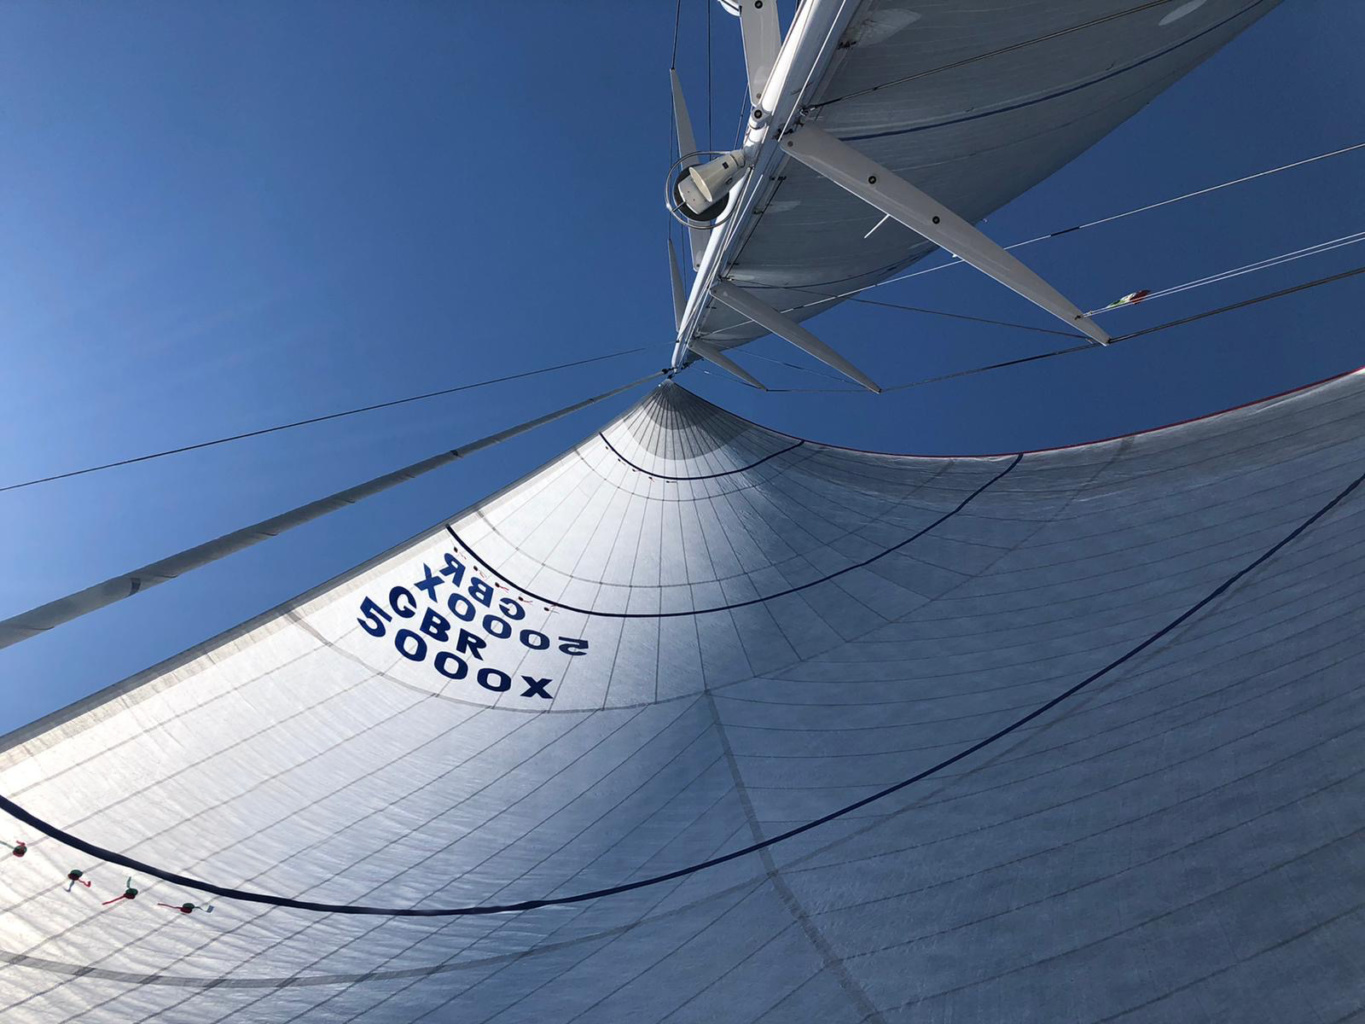 swan 78 kinina code zero NPL downwind north sails